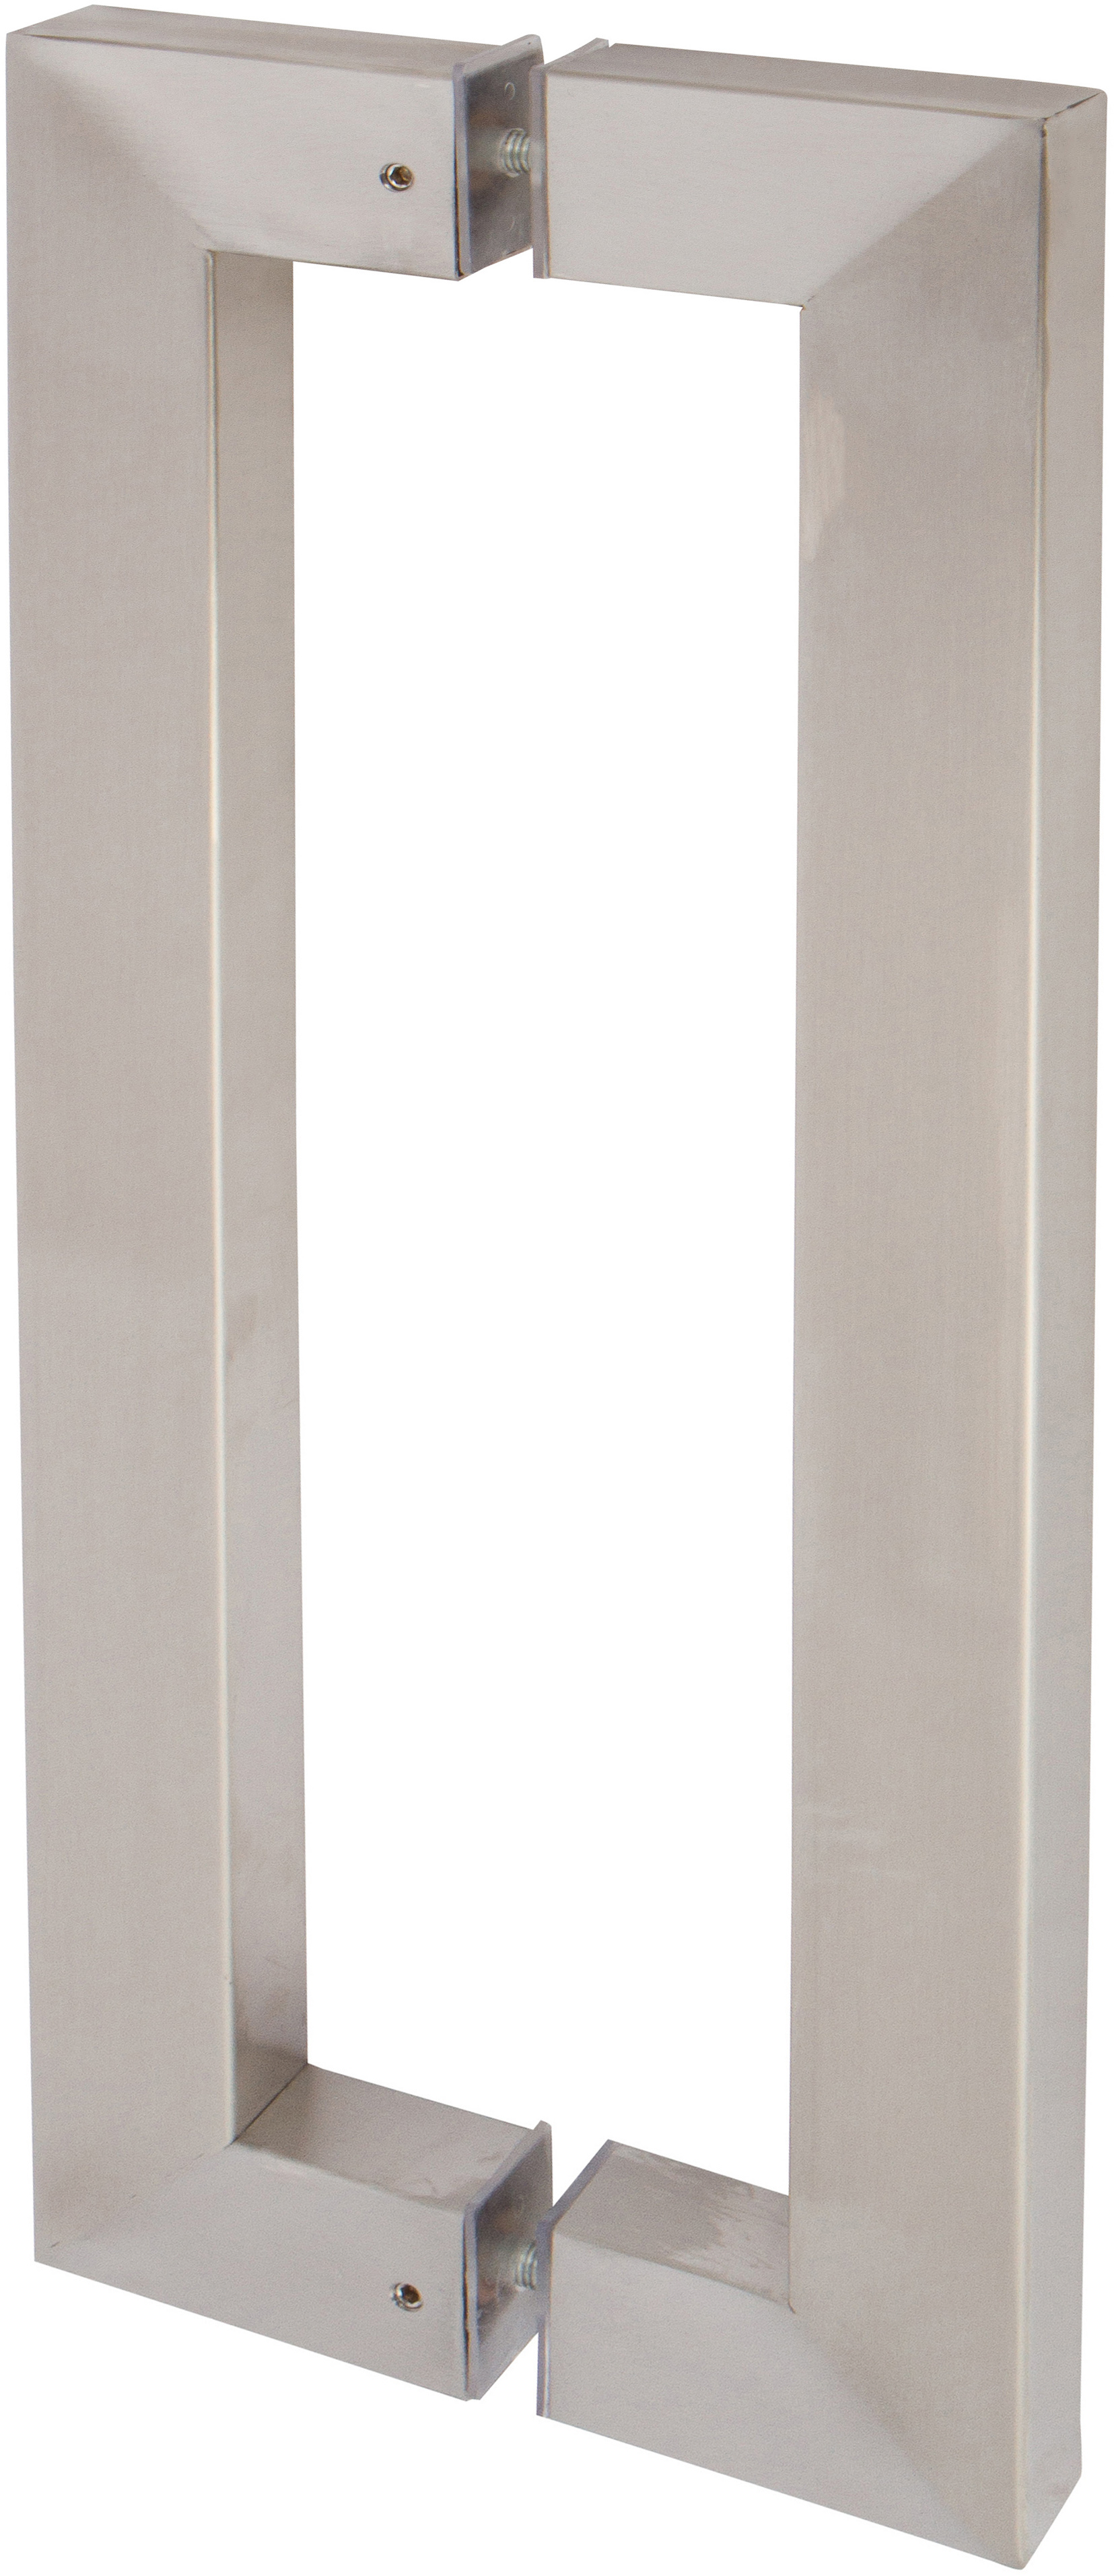 Double Sided Square Barn Door Handle Delaney Hardware